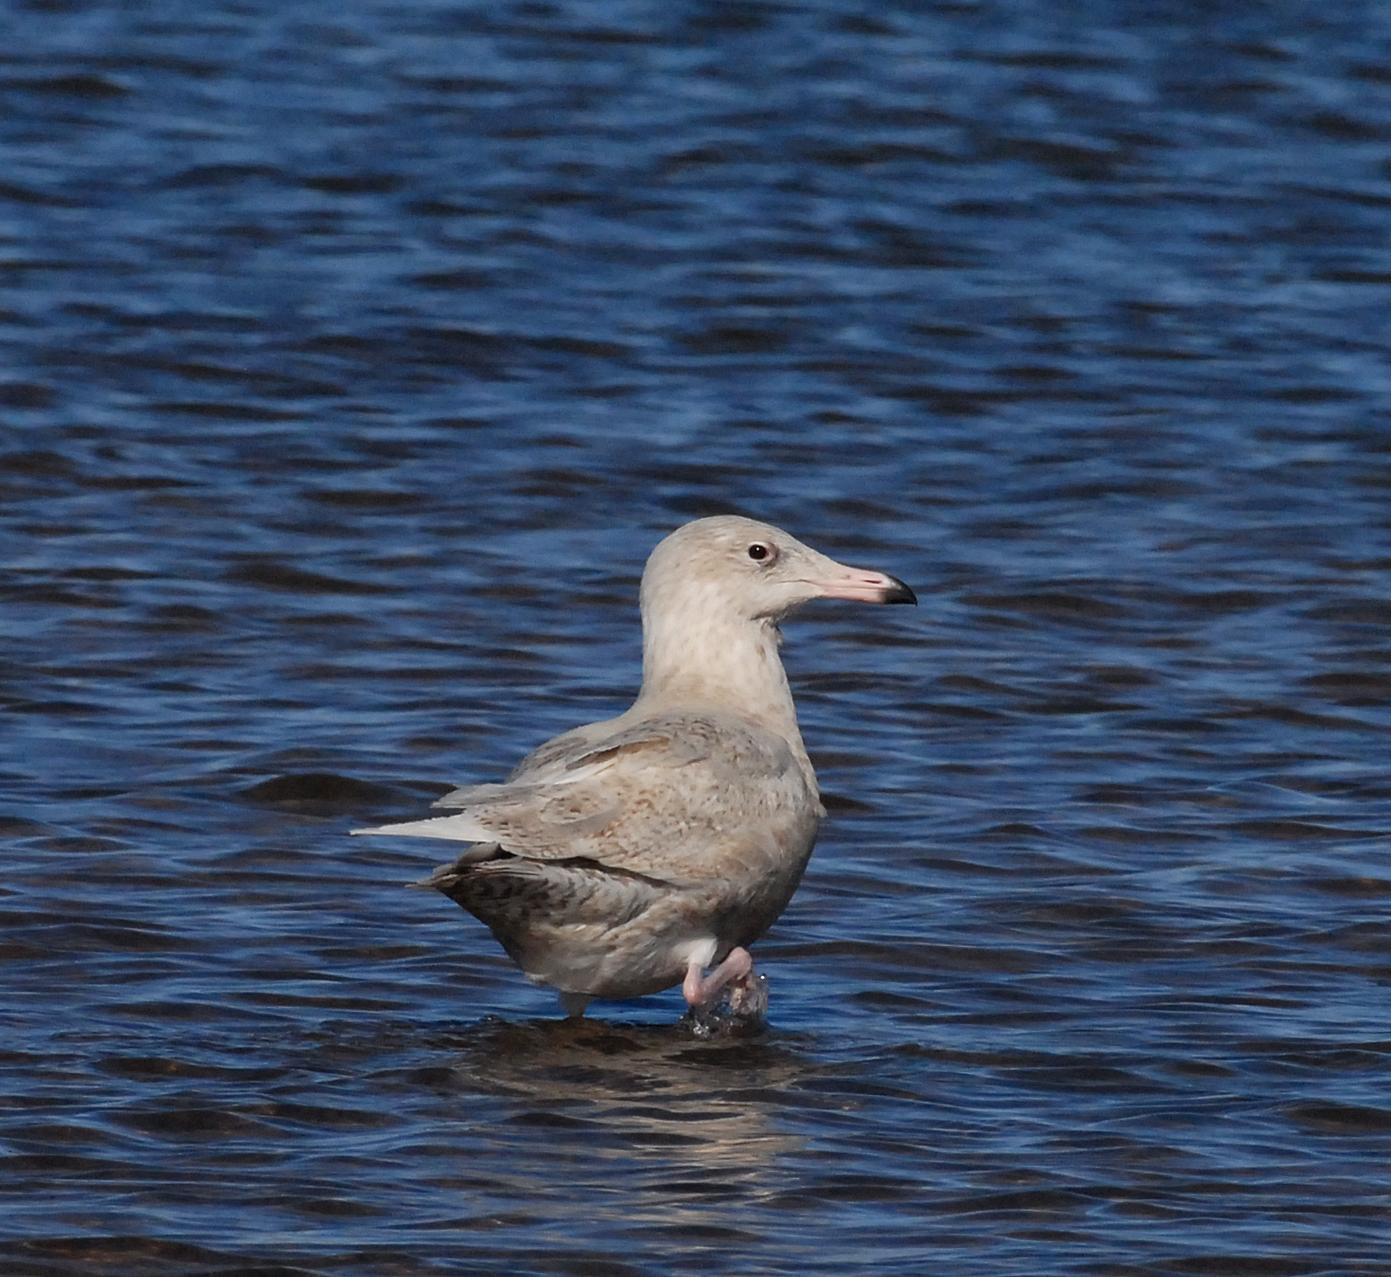 Glaucous Gull Photo by Steven Mlodinow